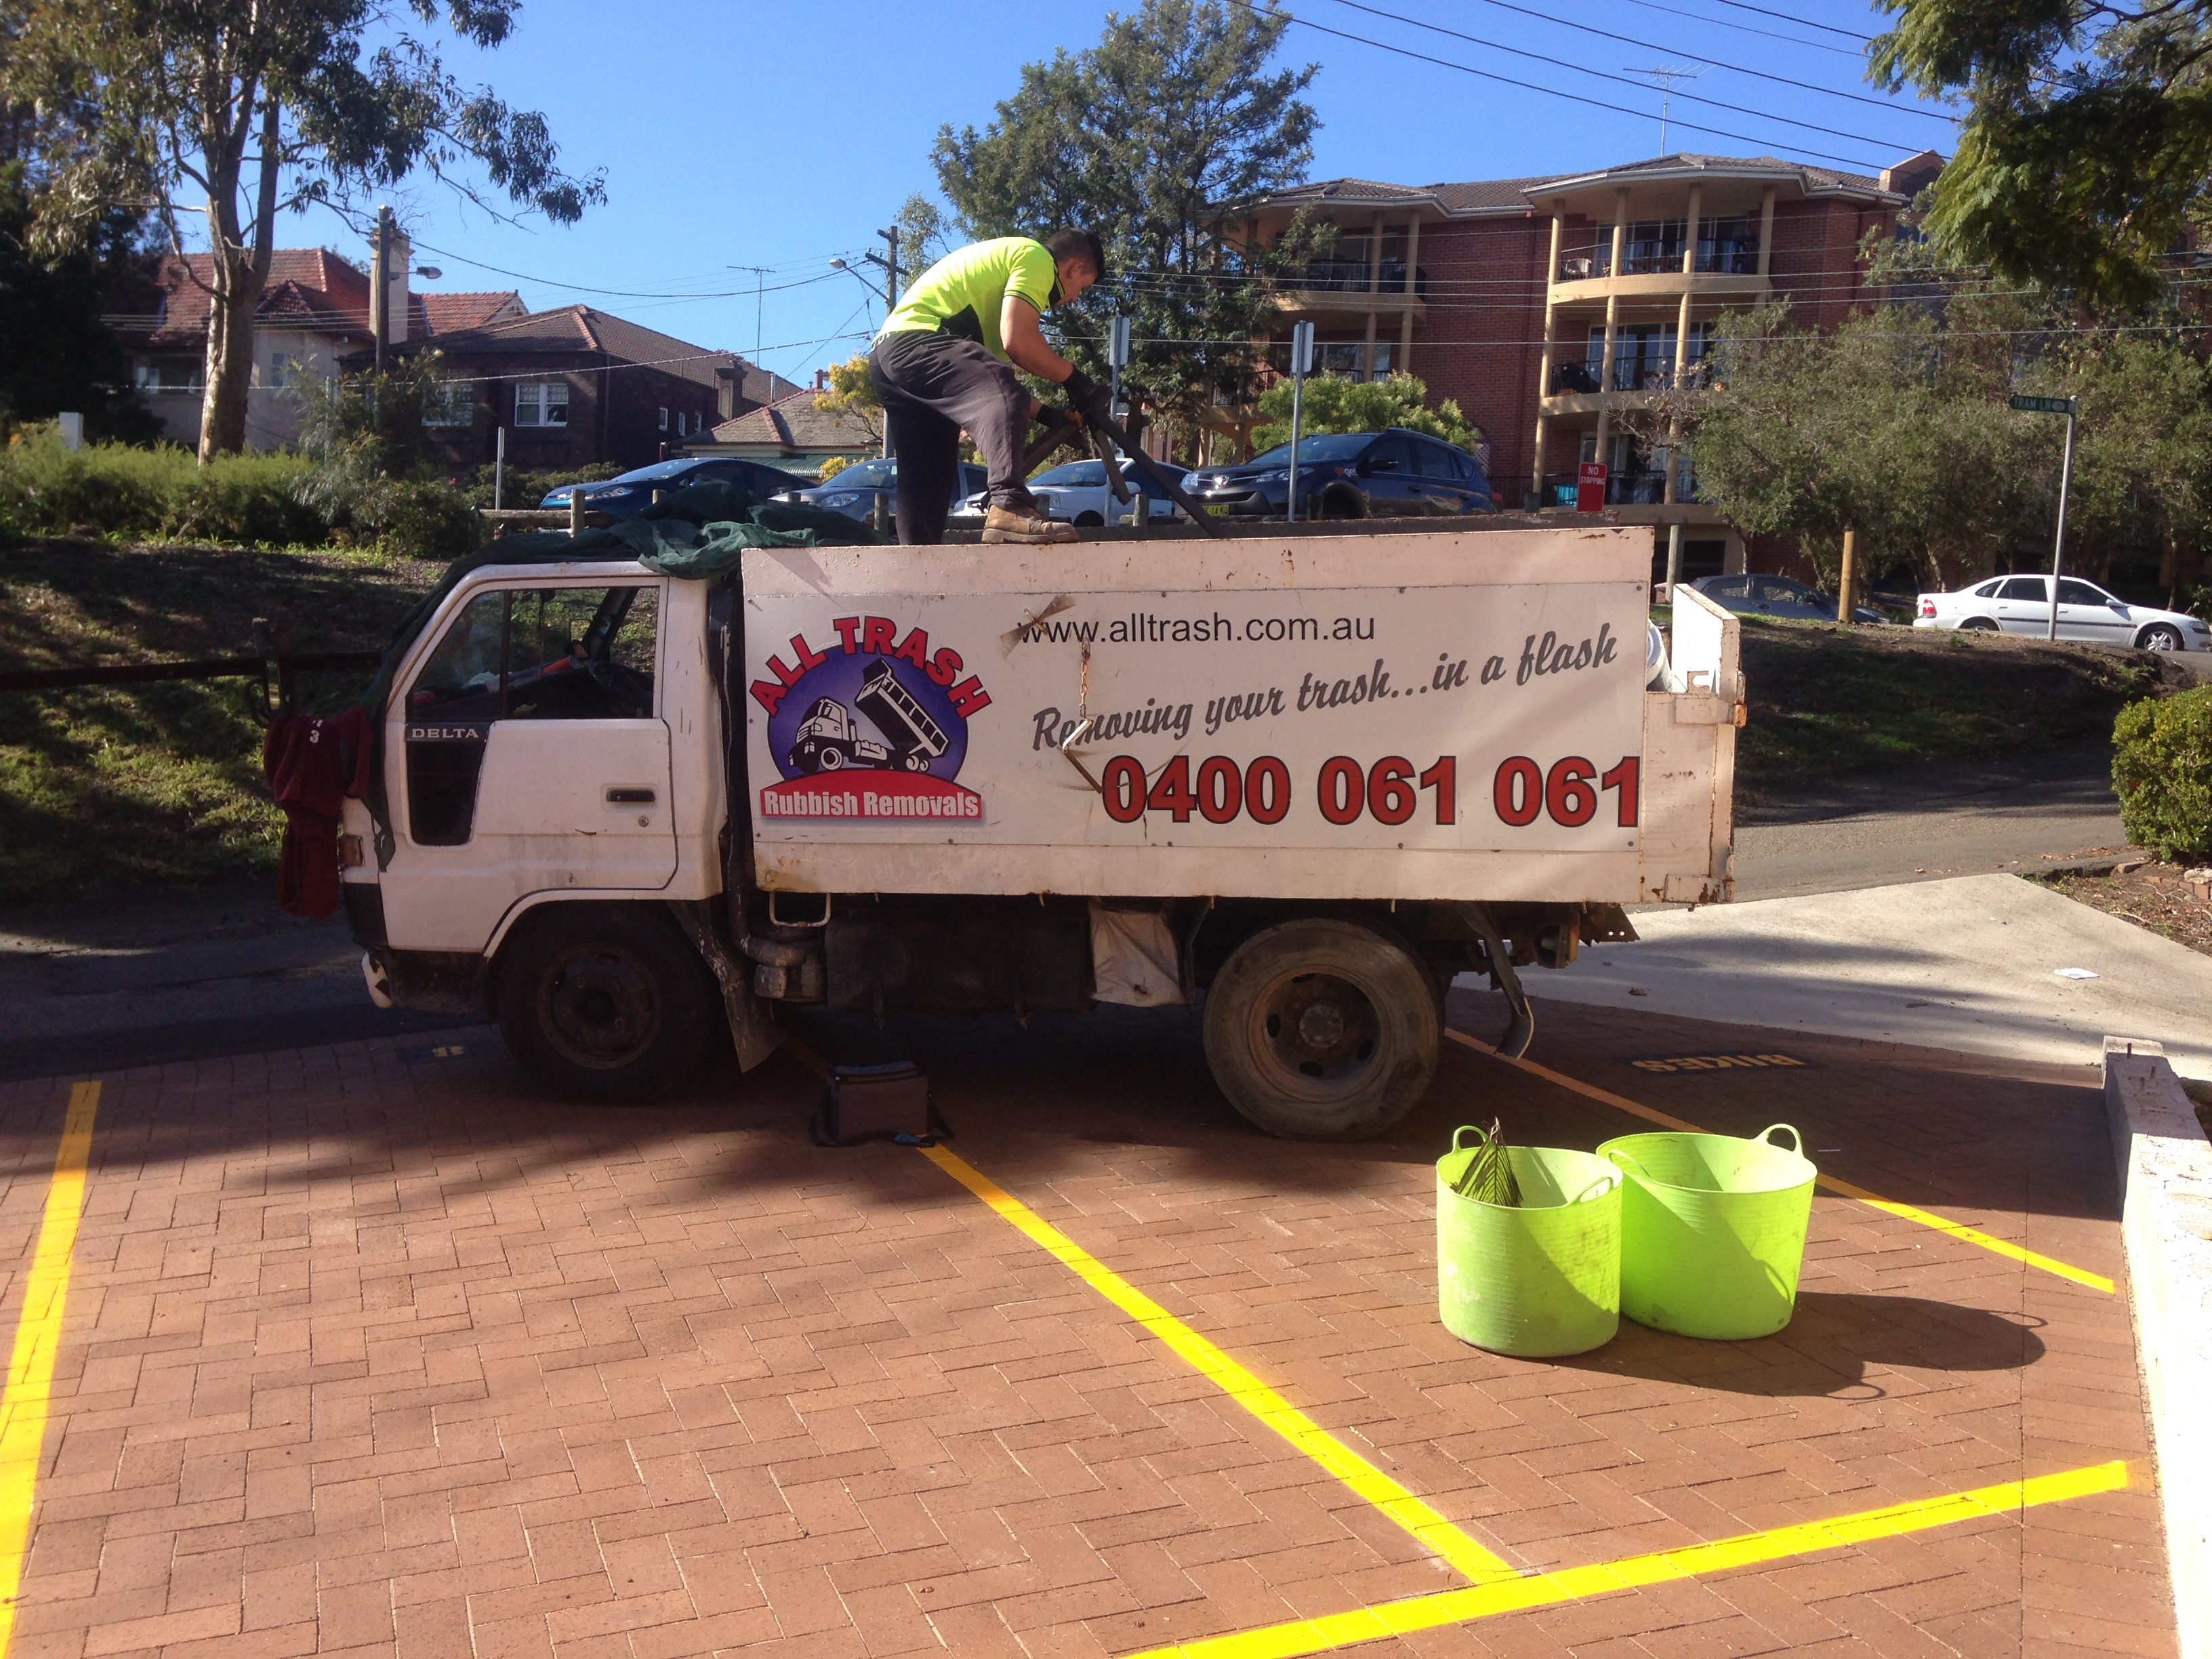 Rubbish Removals Edgecliff